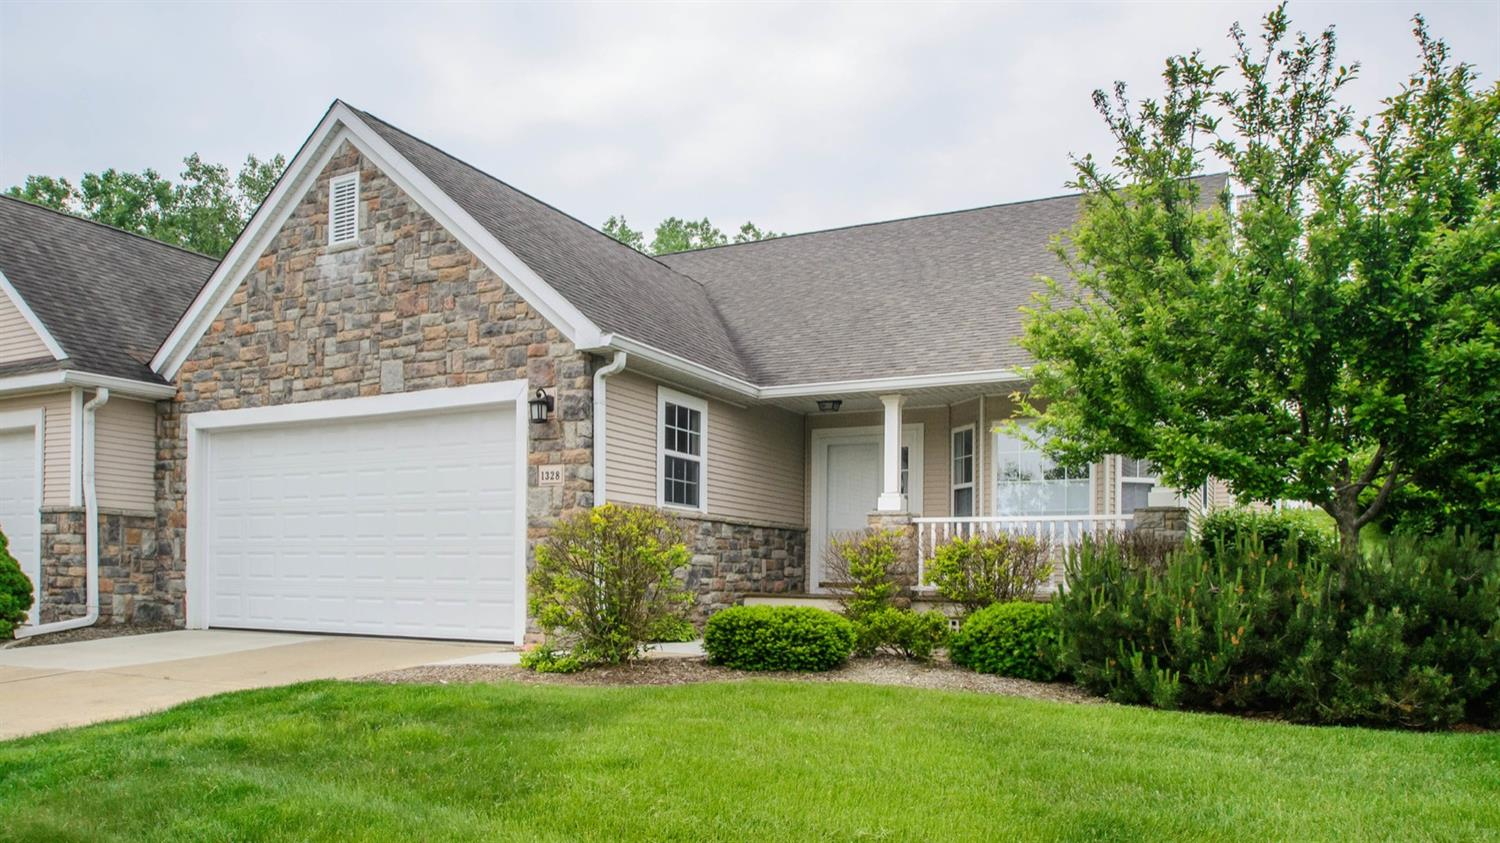 MLS# 3265982 - 1328  Nottington Court Ann Arbor MI 48103